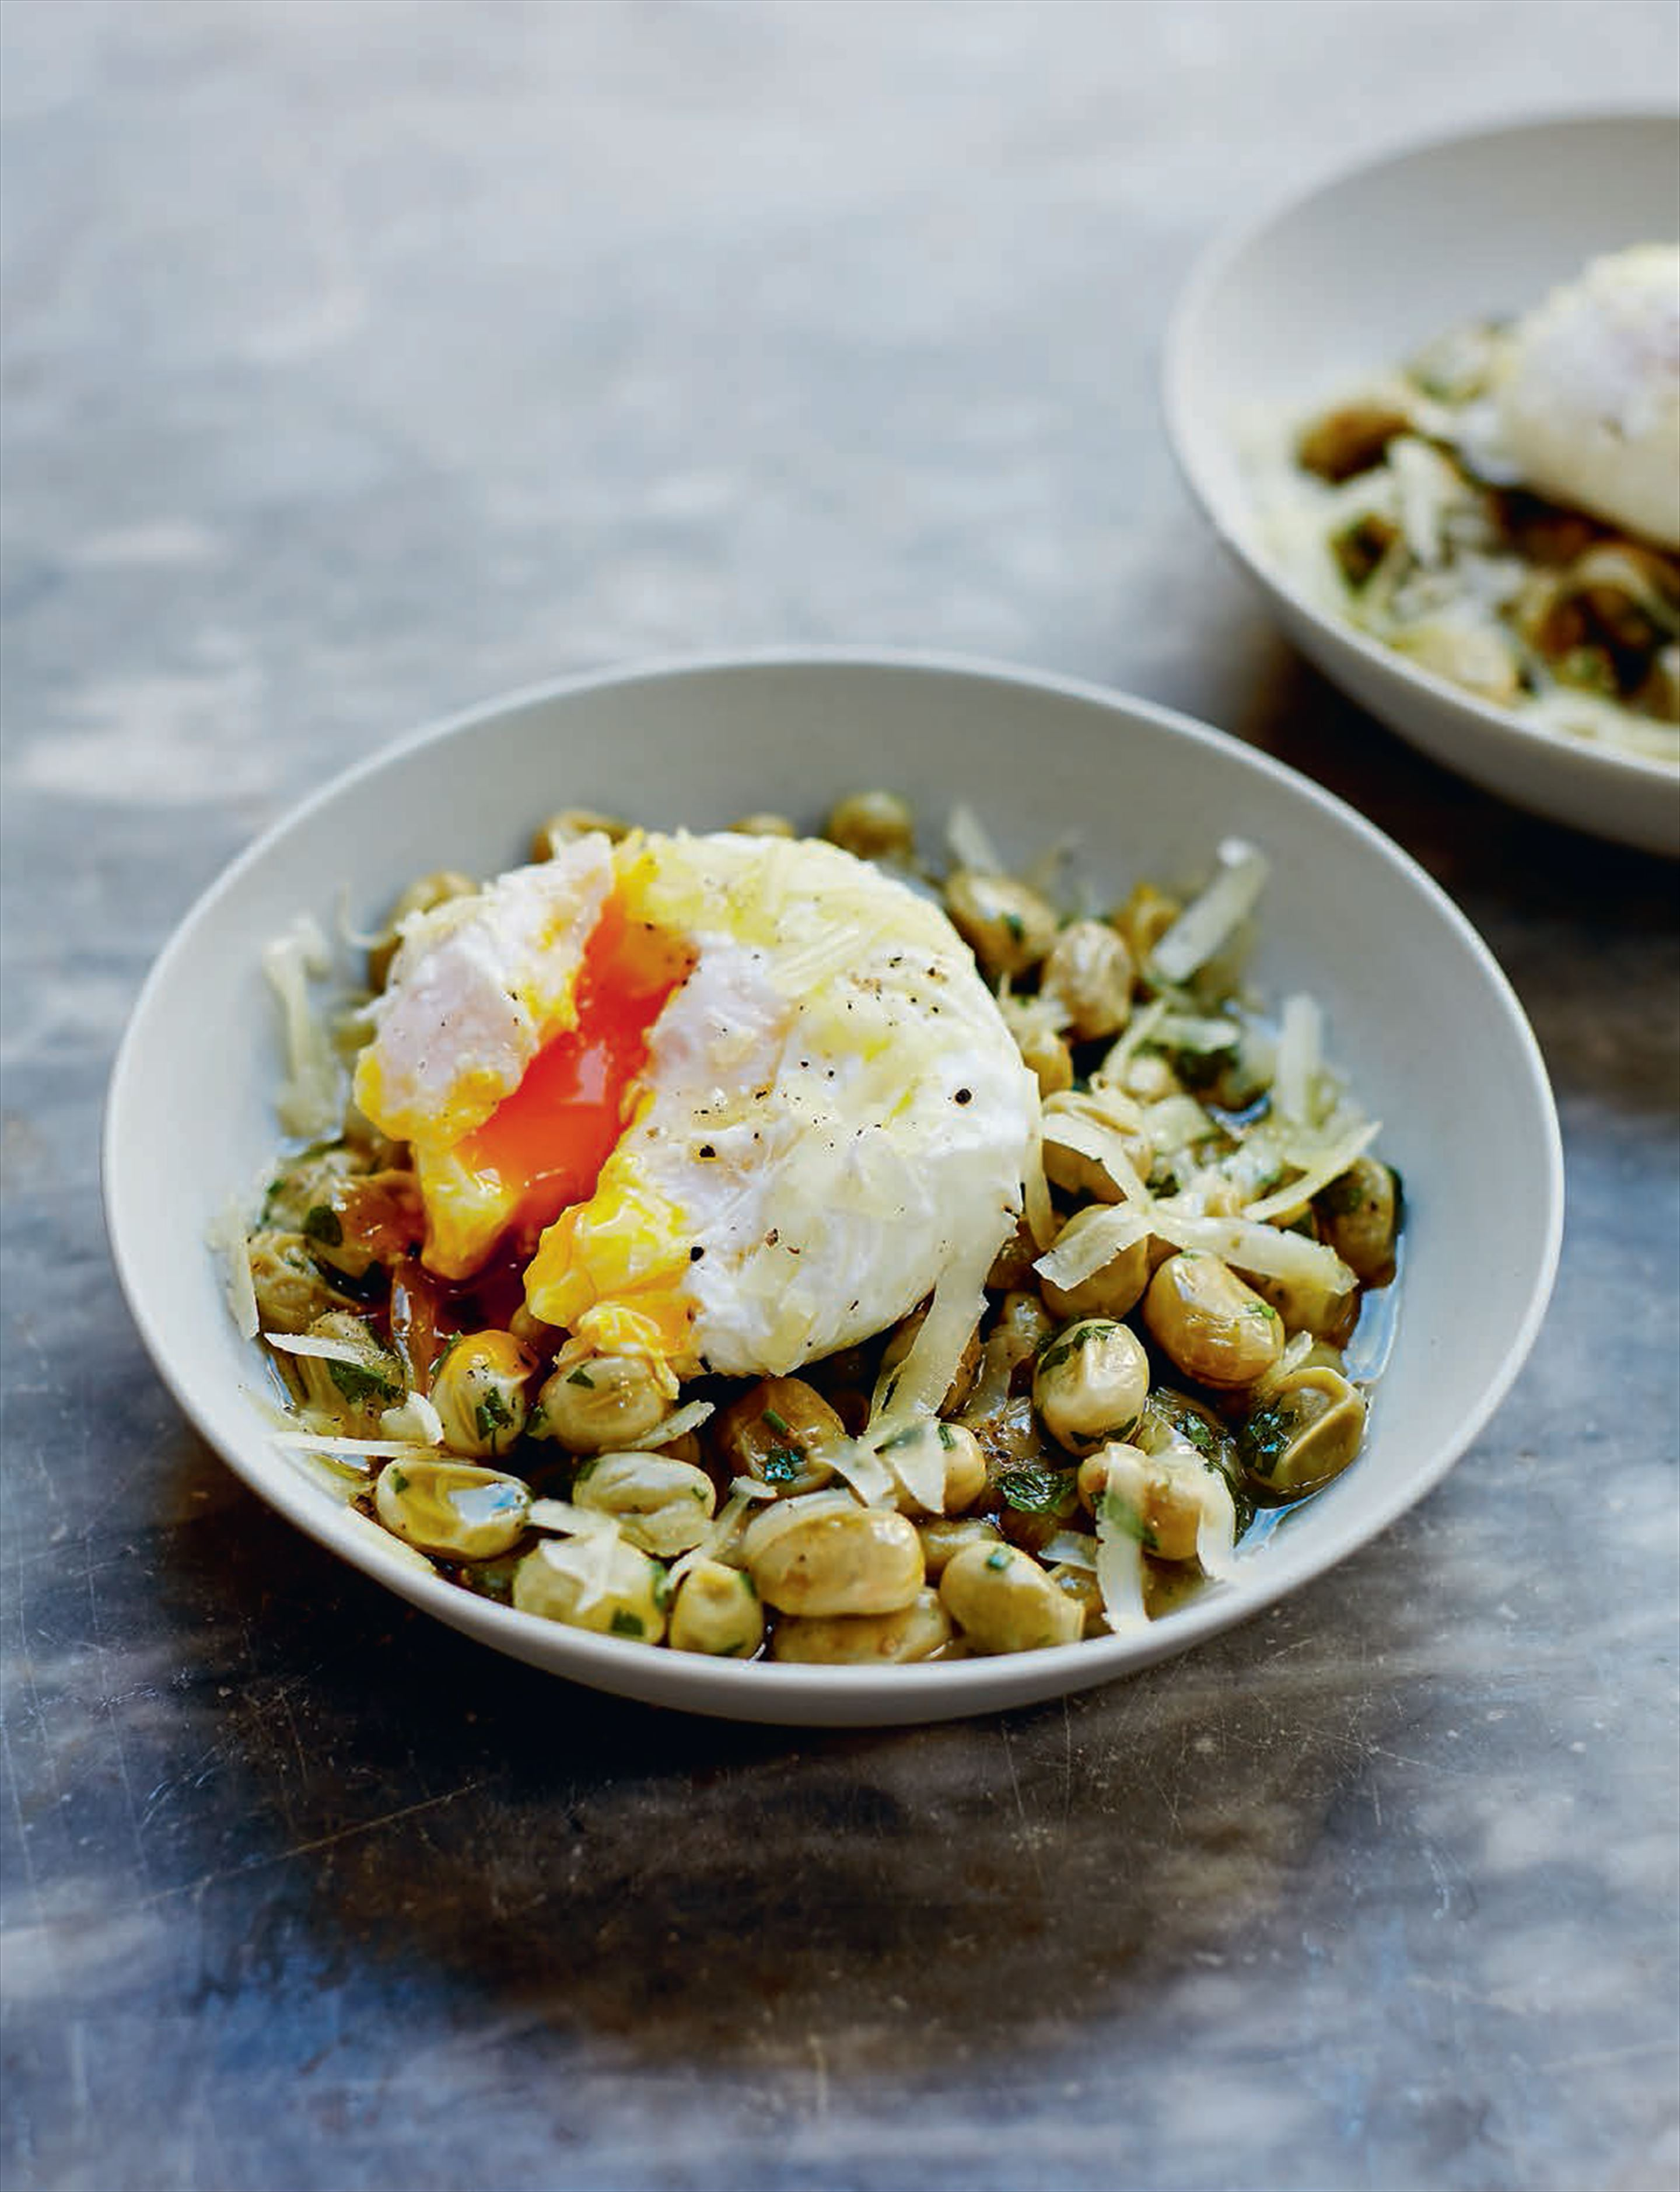 Slow-cooked broad beans with poached egg